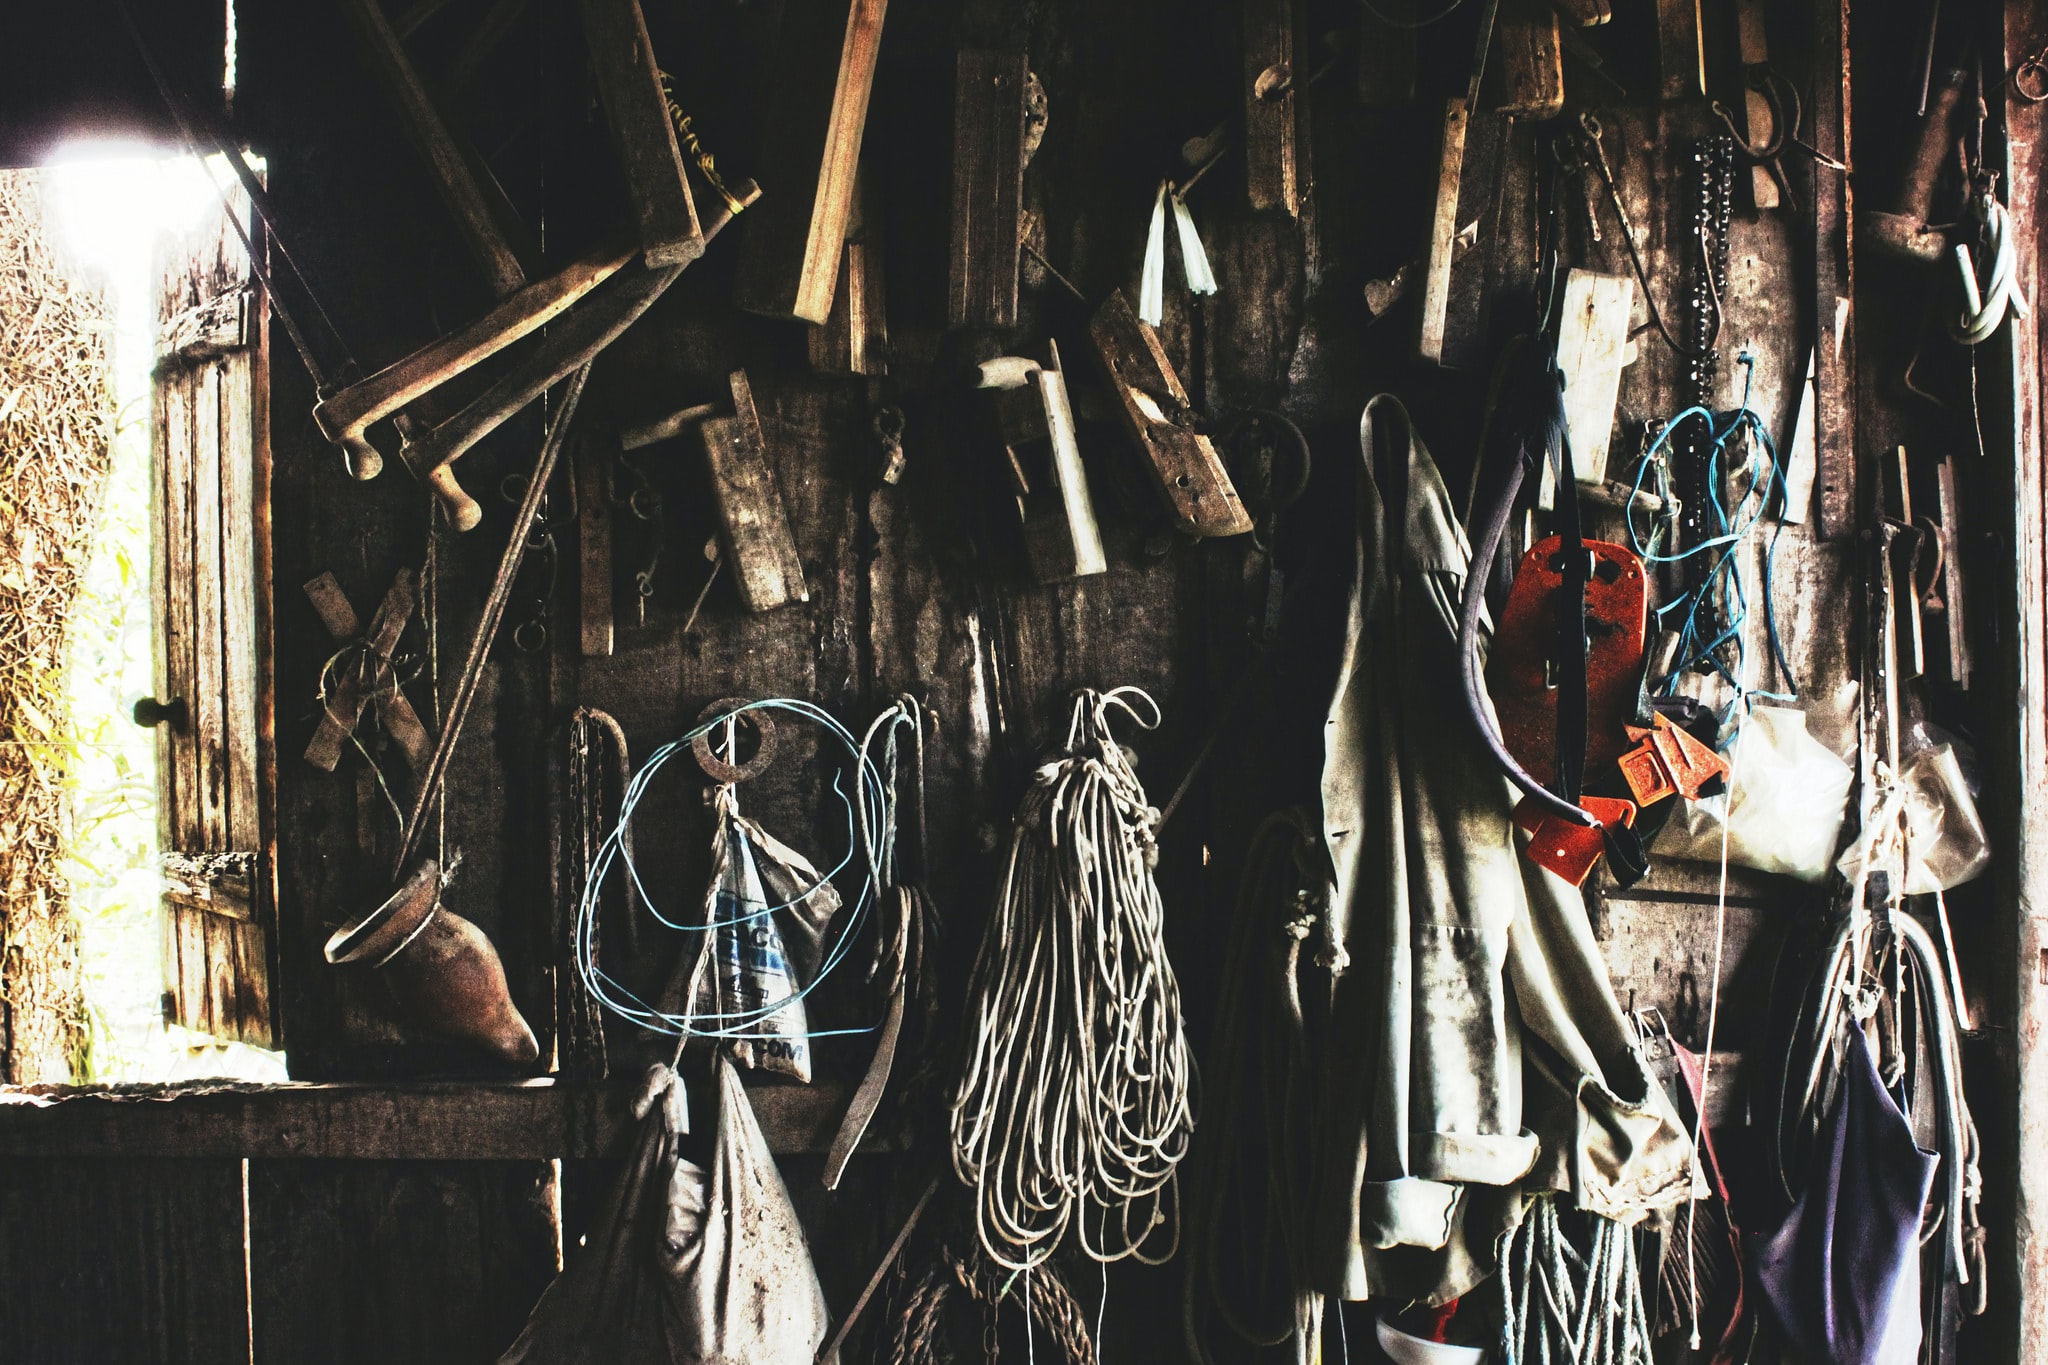 Various tools and ropes hanging from a wall in a workshop